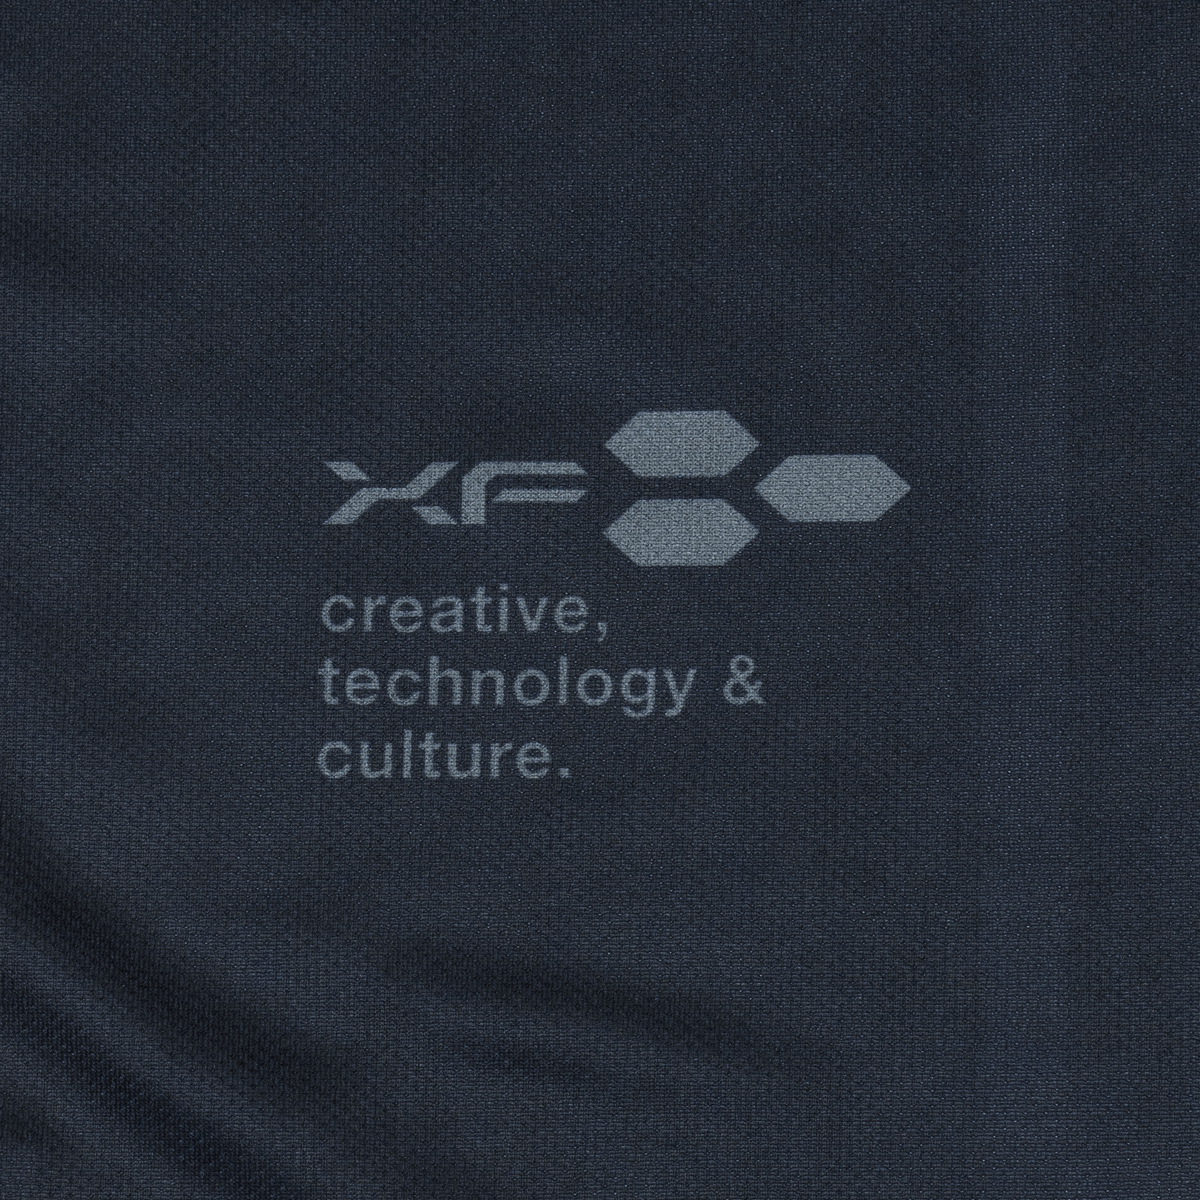 <img class='new_mark_img1' src='https://img.shop-pro.jp/img/new/icons8.gif' style='border:none;display:inline;margin:0px;padding:0px;width:auto;' />Tシャツ Design04 ブラック